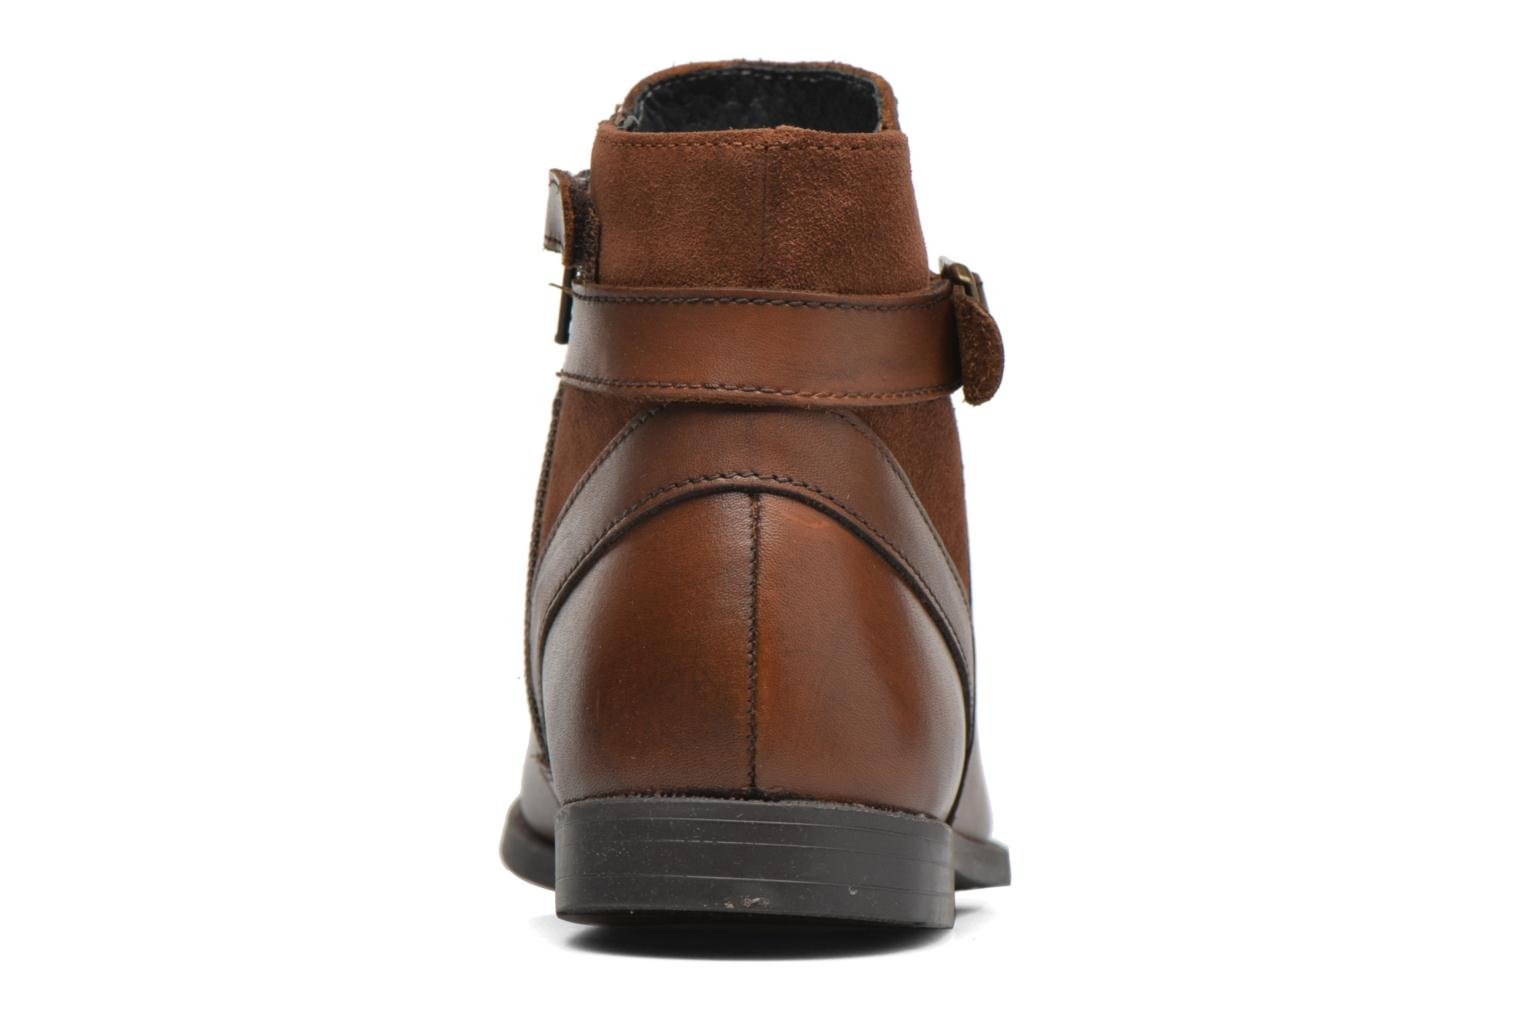 Imogen Tan leather/suede